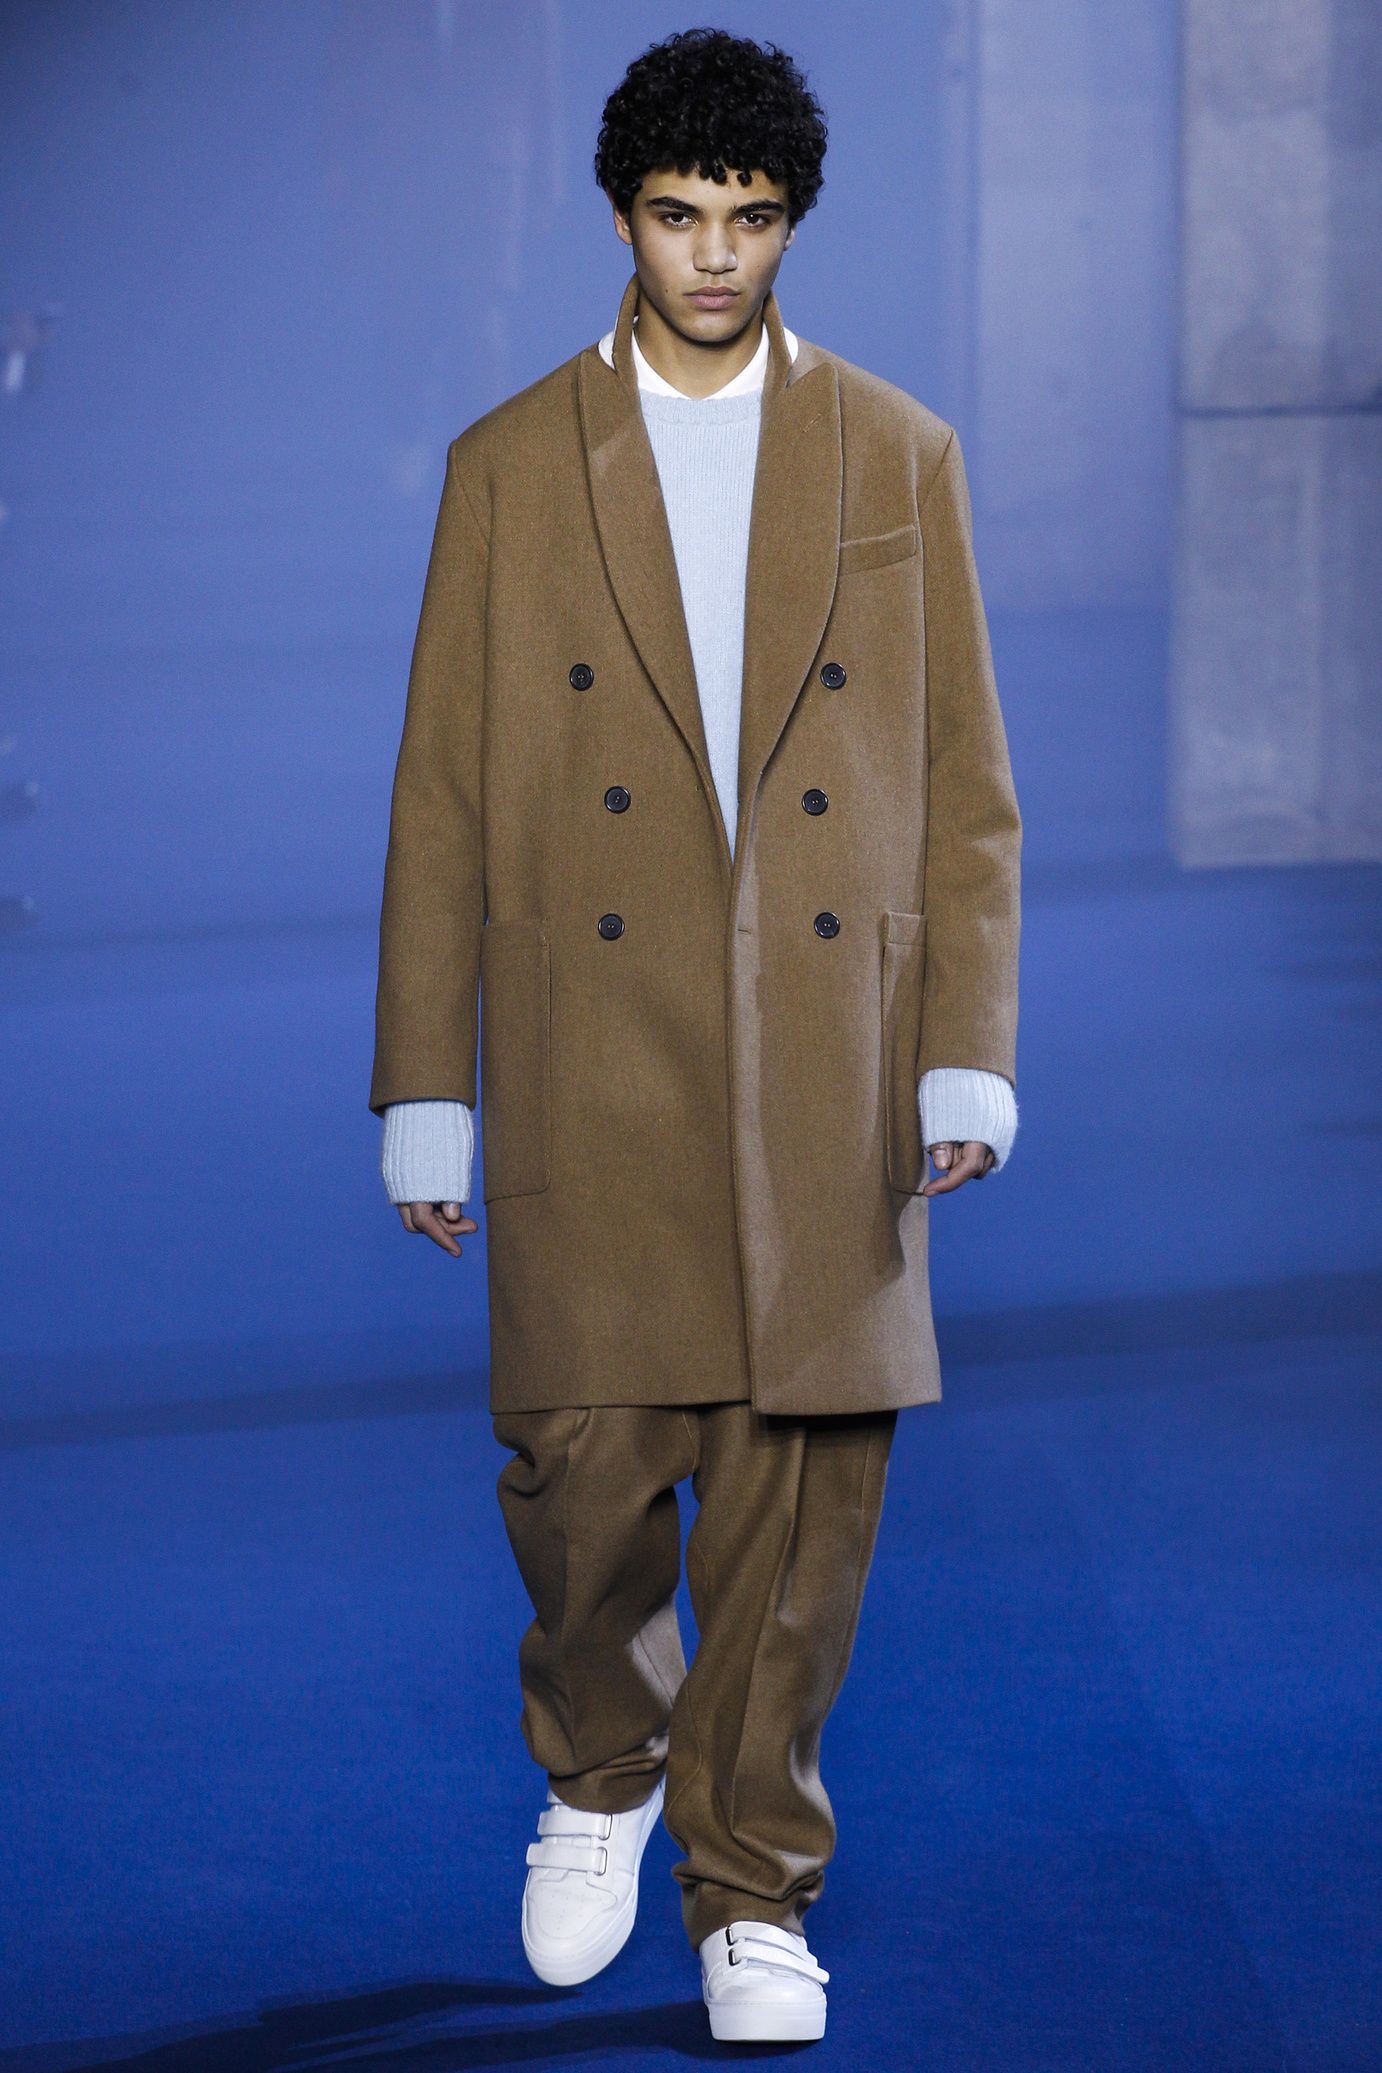 Ami fallwinter runwaymen pinterest menswear mens